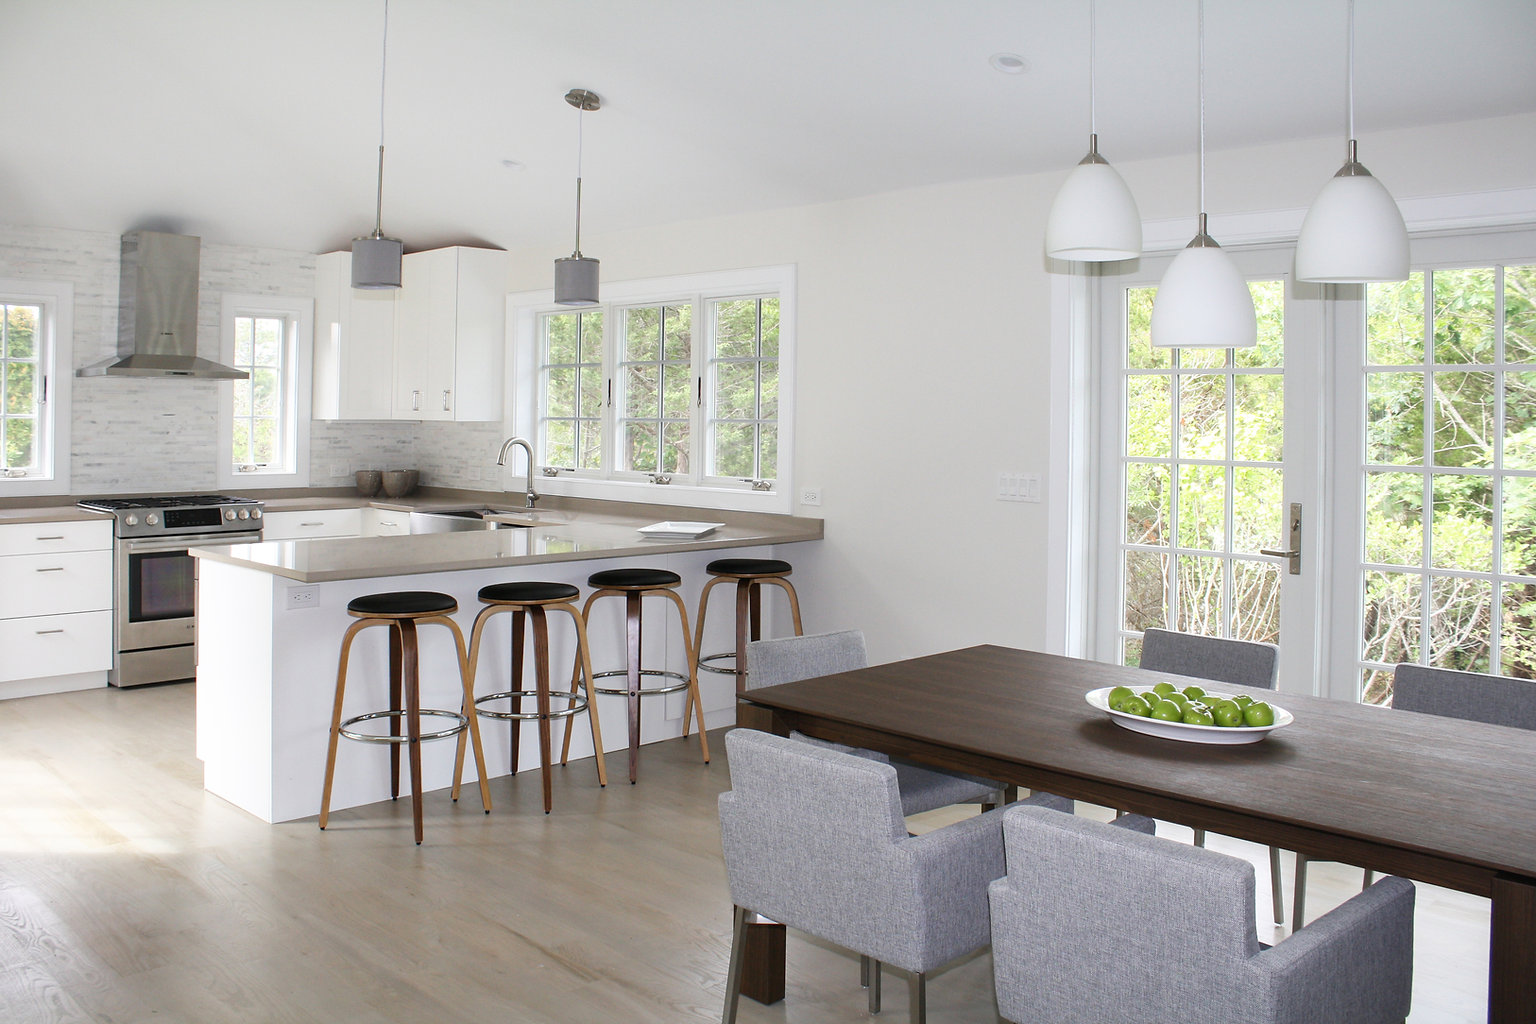 Contemporary Hamptons Kitchen, tile backsplash, white cabinets, stainless farm sink, stainless steel appliances and hood, wood bar stools, modern wood dining table, gray dining chairs, modern dinin chairs, white pendant fixture, gray pendant lighting, gray wood floor